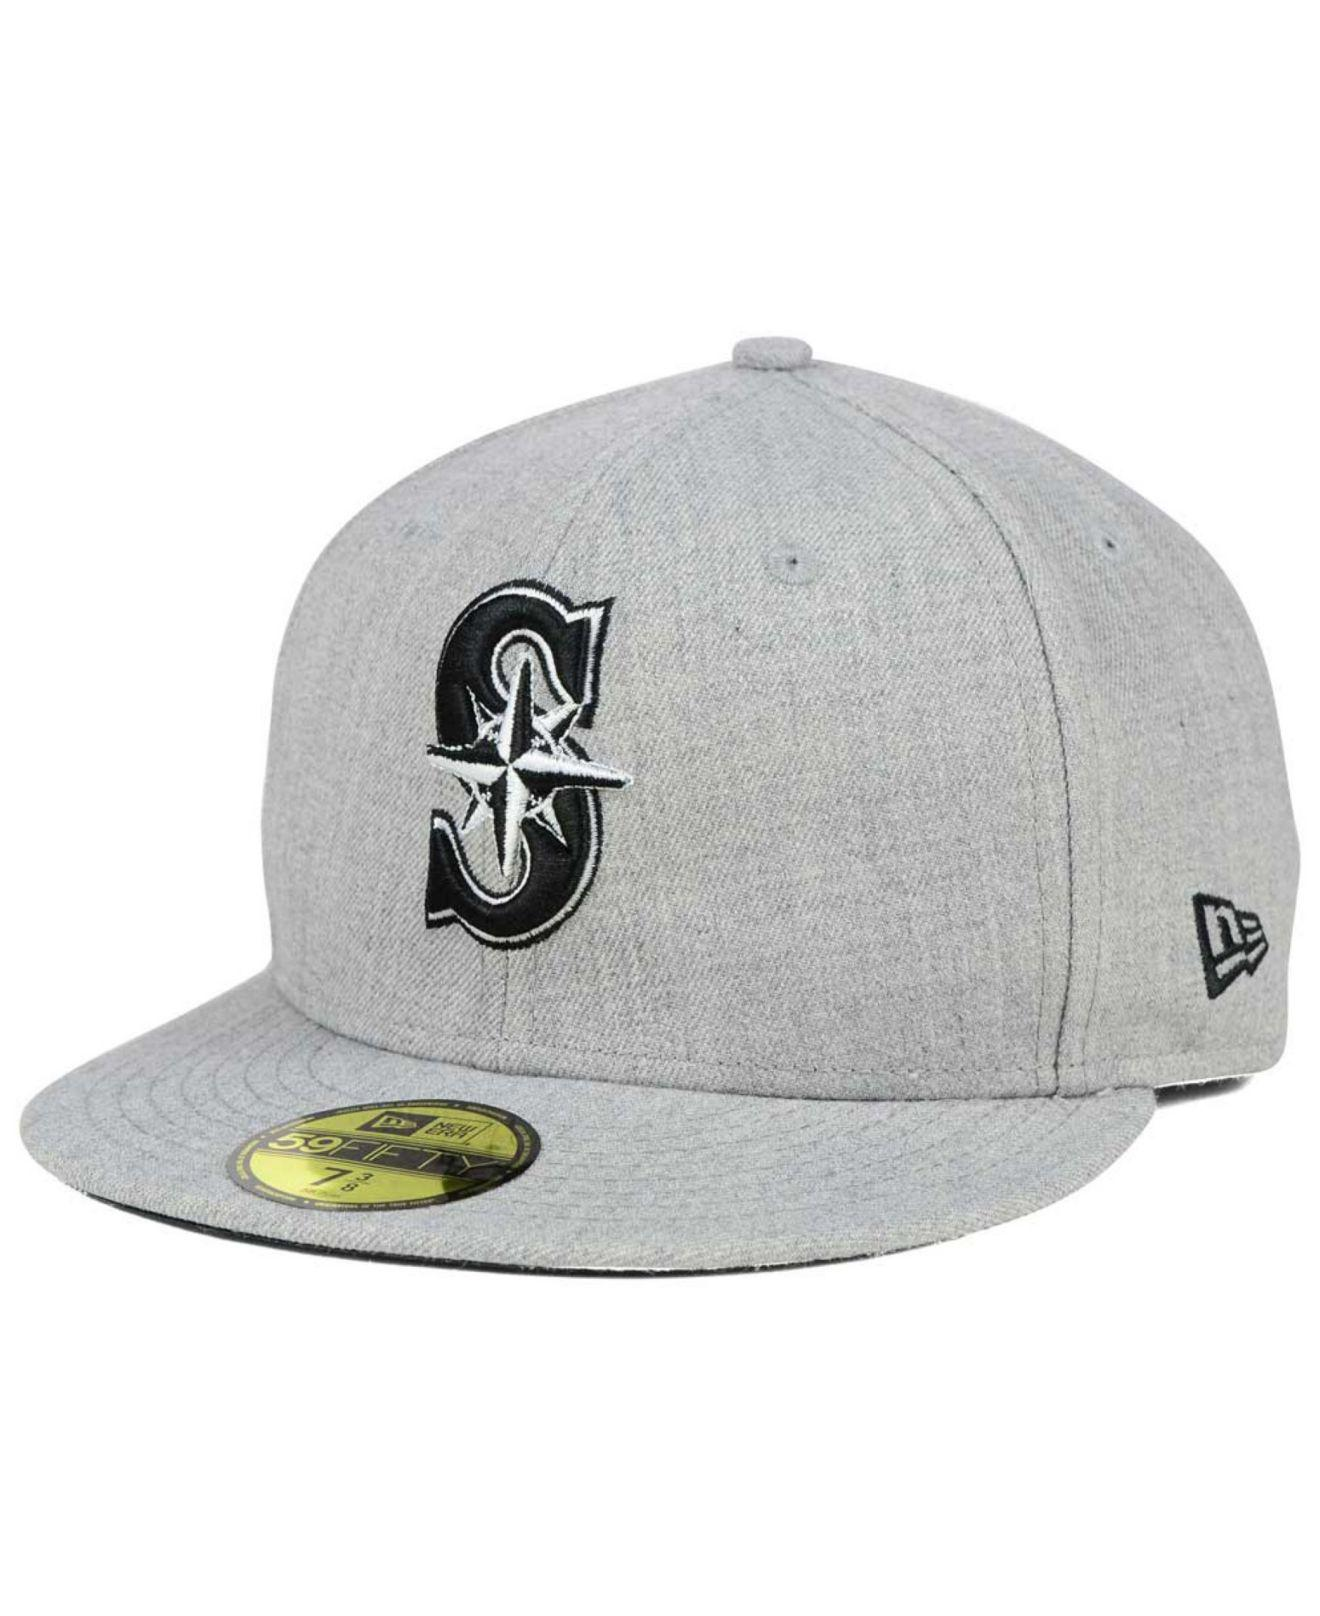 ... sweden ktz. mens gray seattle mariners heather black white 59fifty cap  d7dfd e4056 dd9359ac4f89